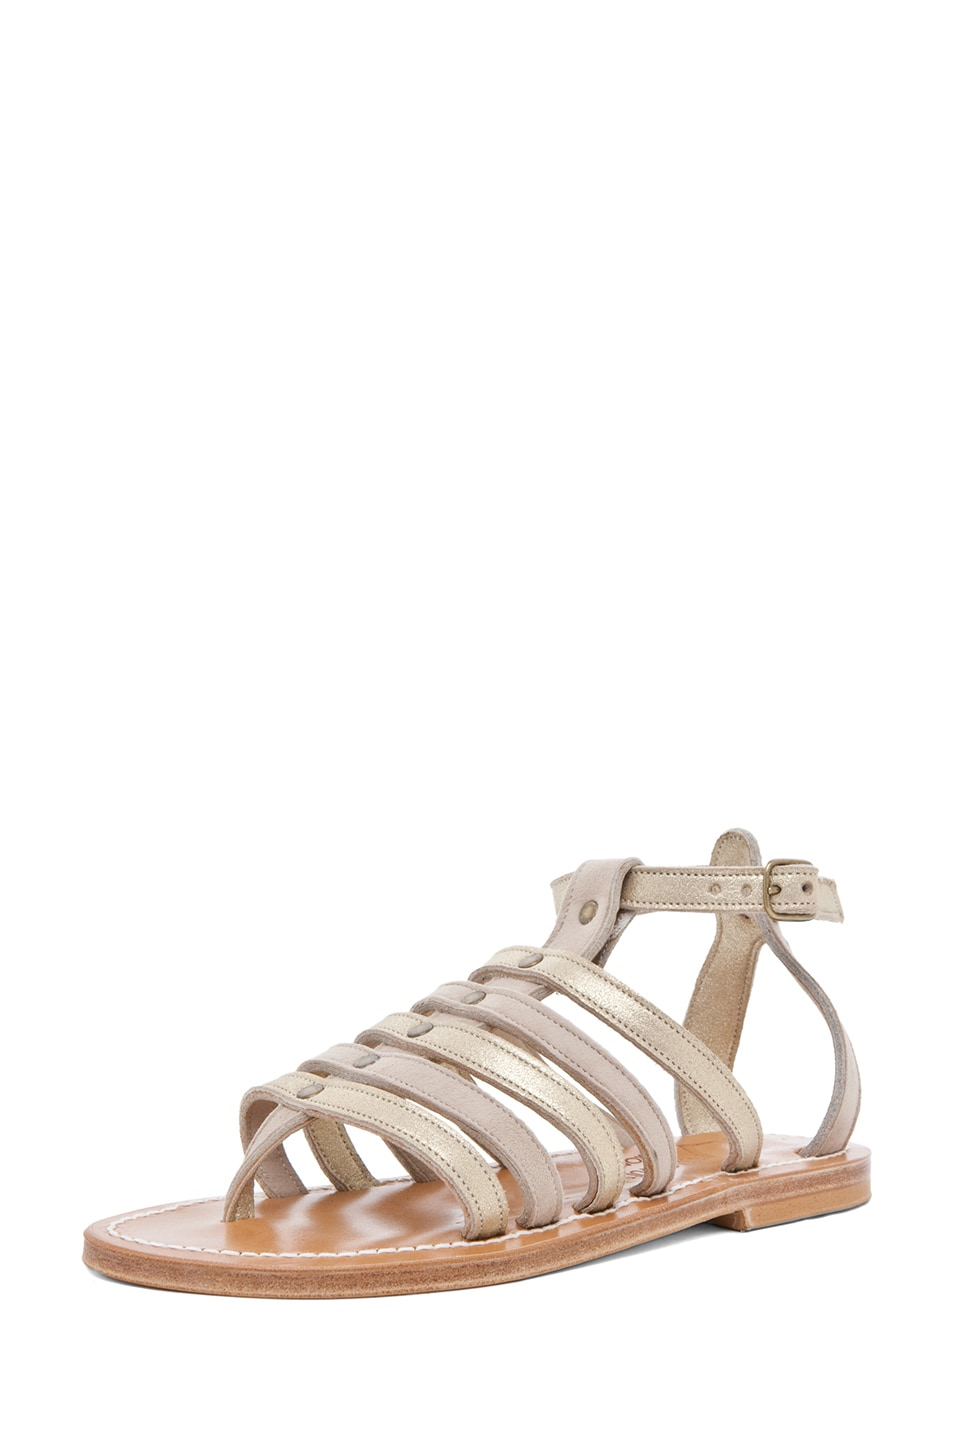 Image 2 of K Jacques Agopos Suede Interbi Gladiator Sandals in Nude & Gold